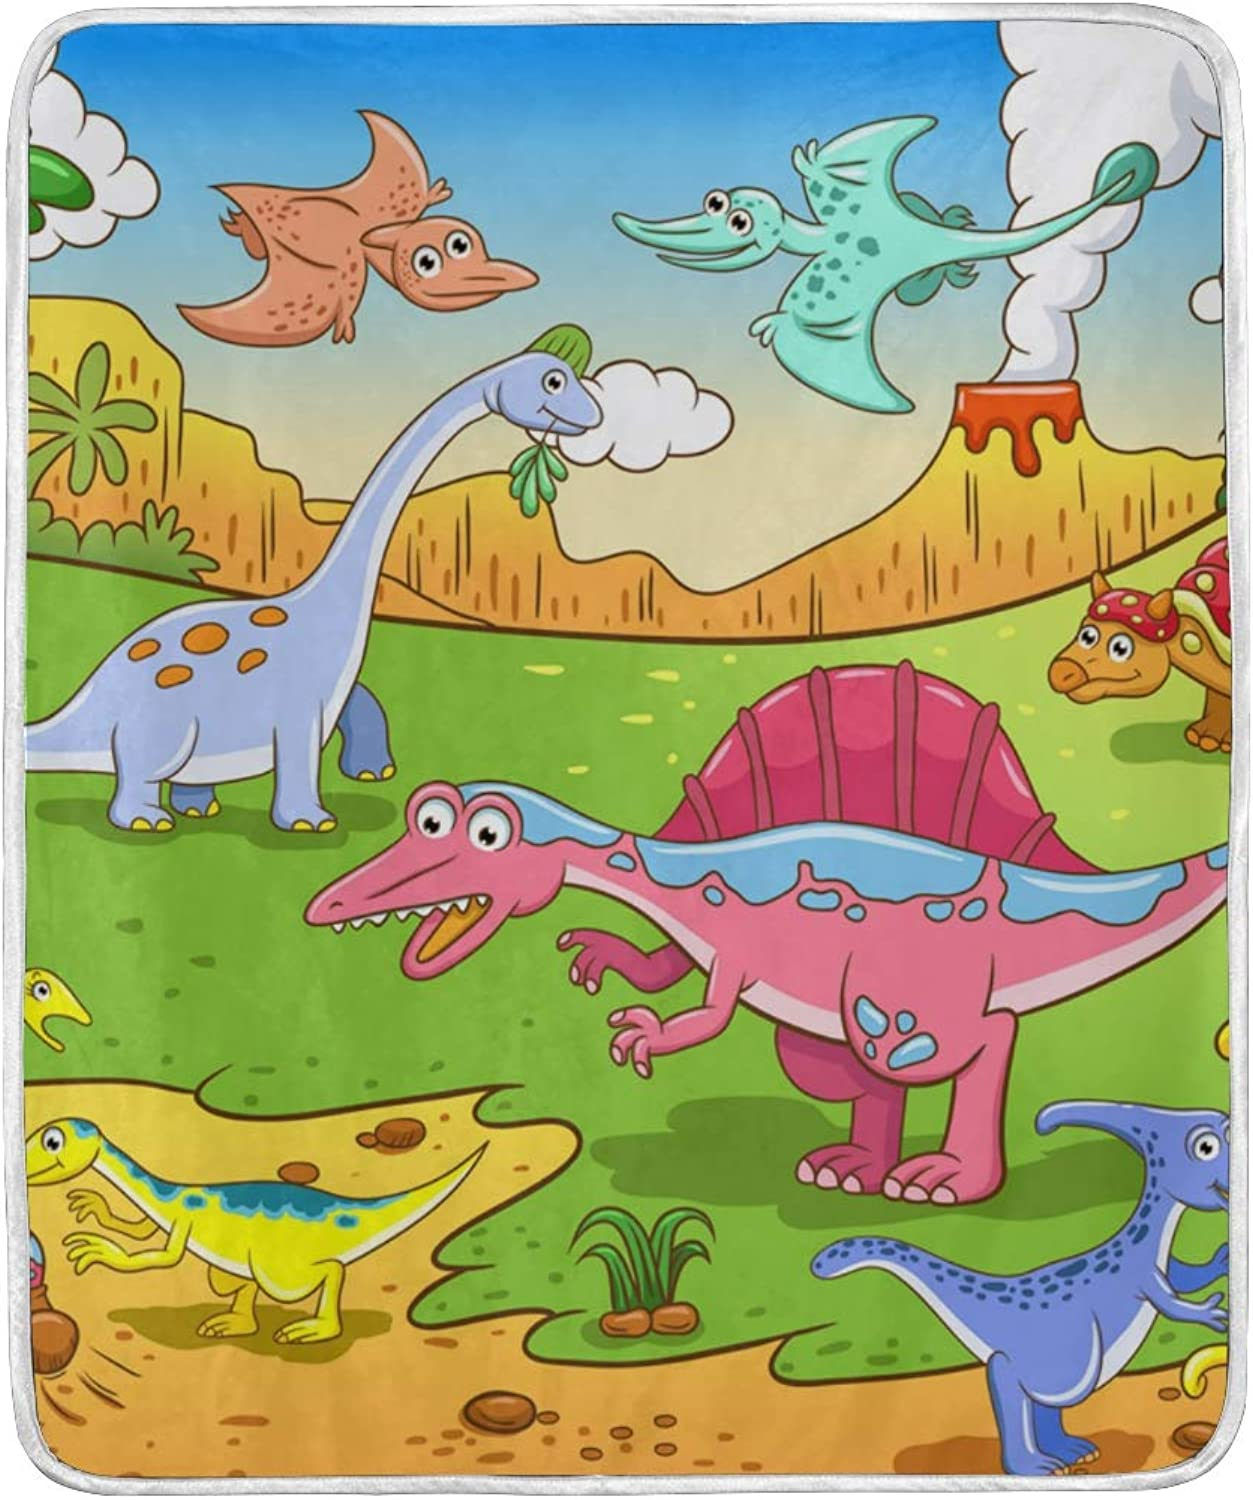 My Daily Cute Dinosaurs Cartoon Kids Throw Blanket Soft Warm Couch Blanket Polyester Microfiber Lightweight Bed Blanket 50x60 inch